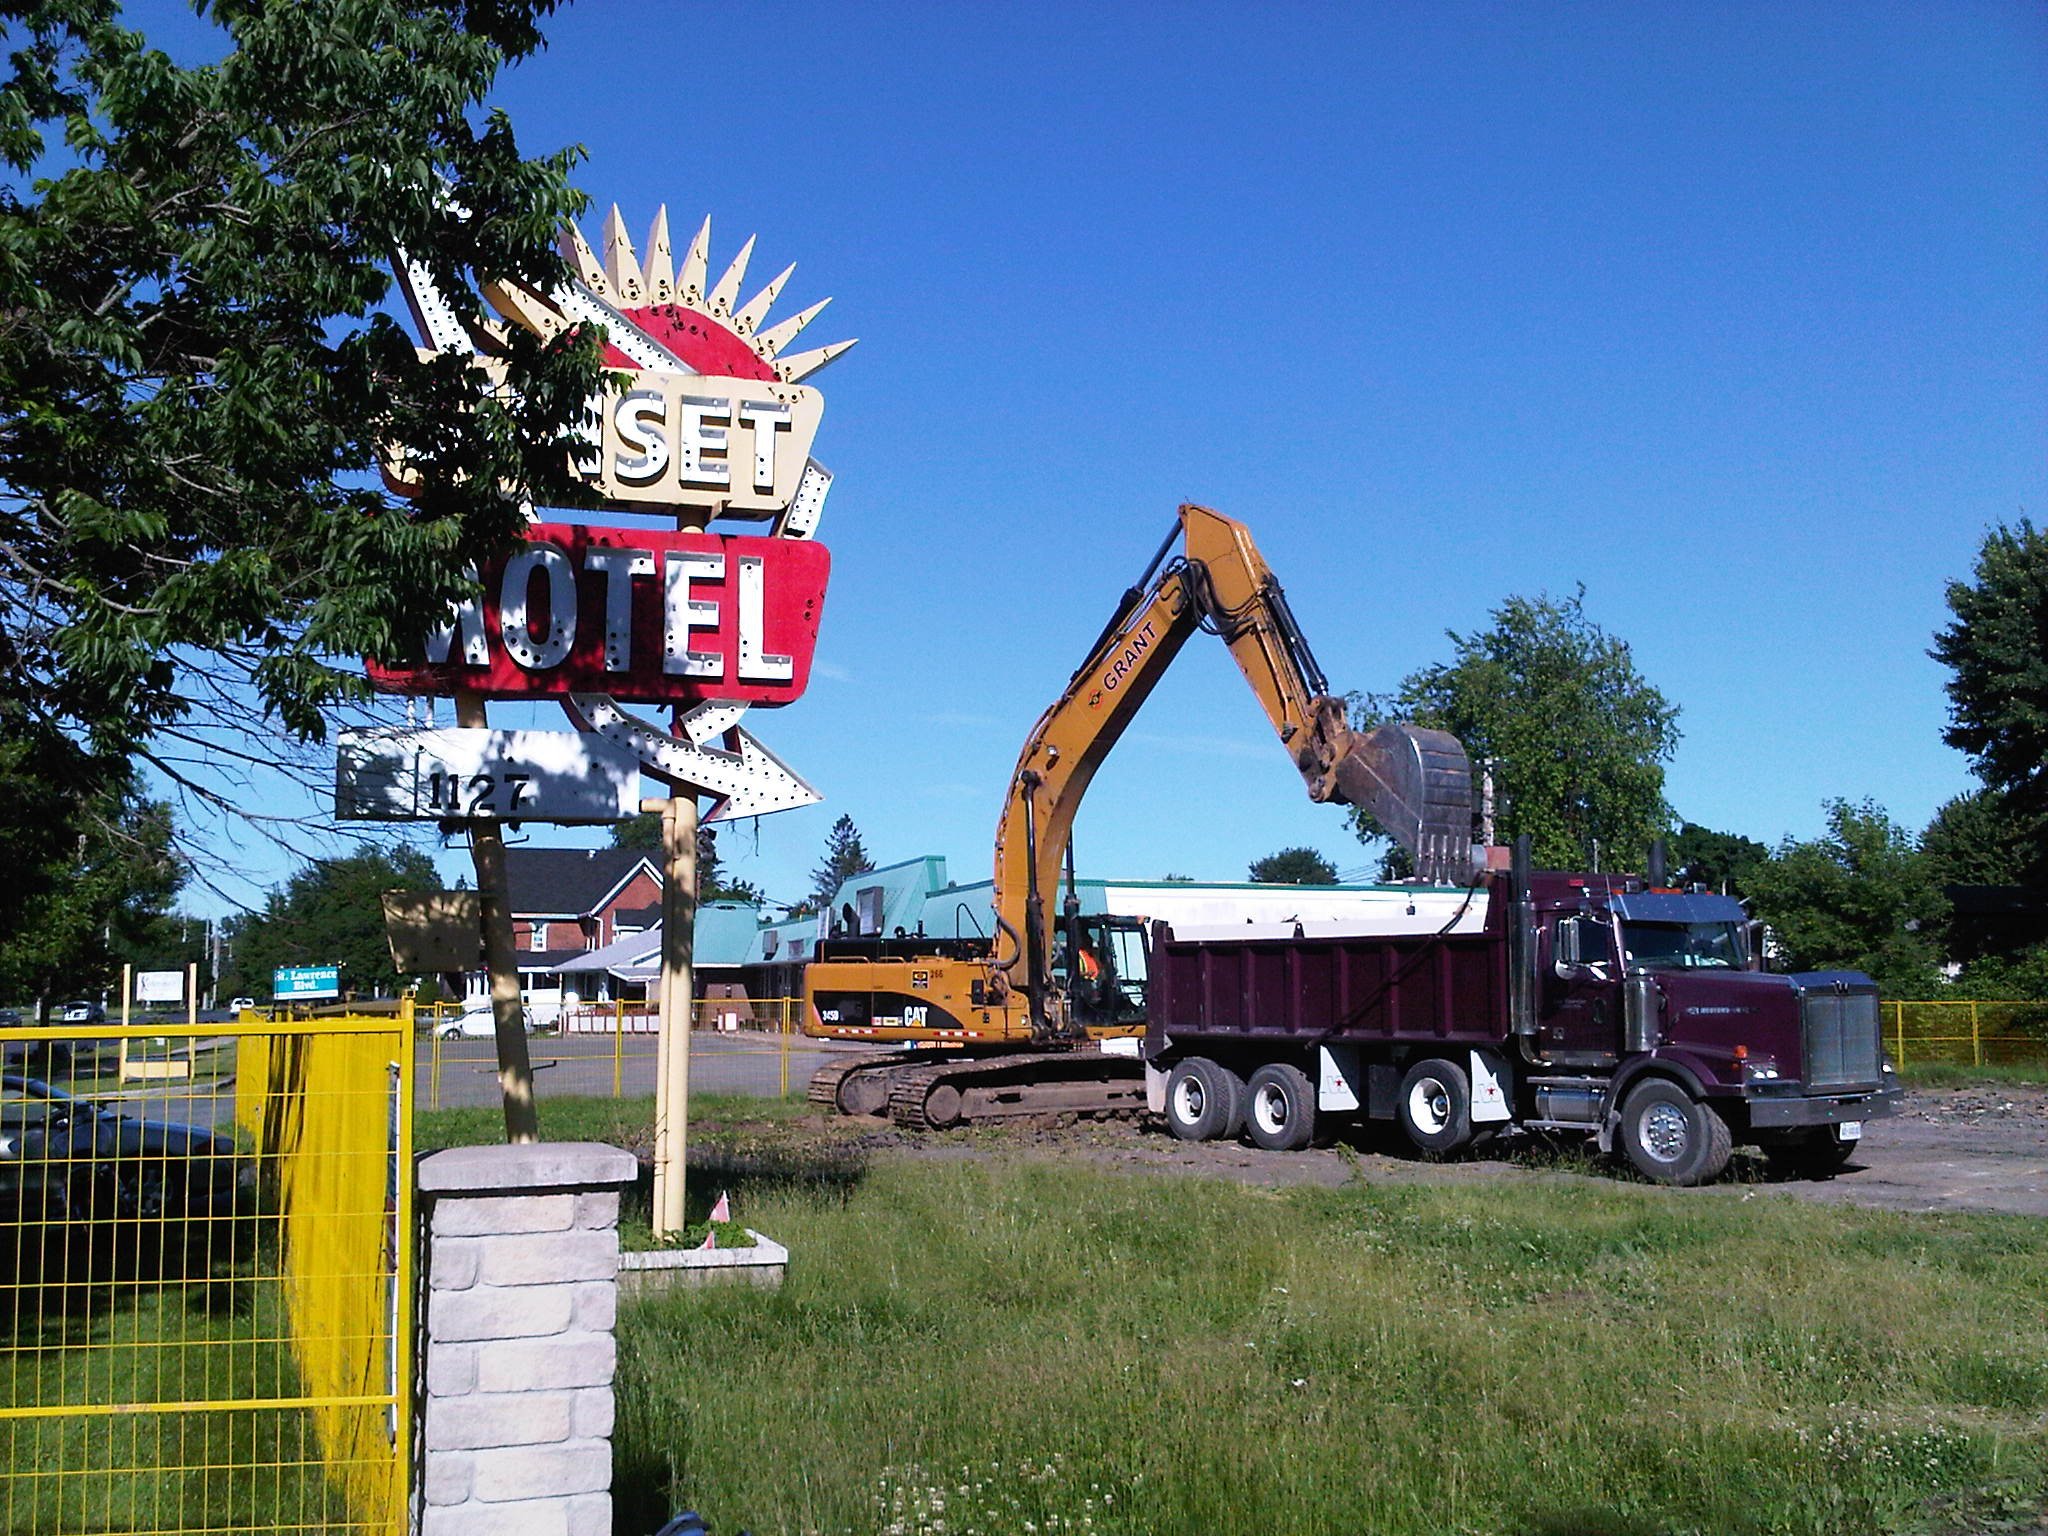 A backhoe works on the Sunset Motel site.